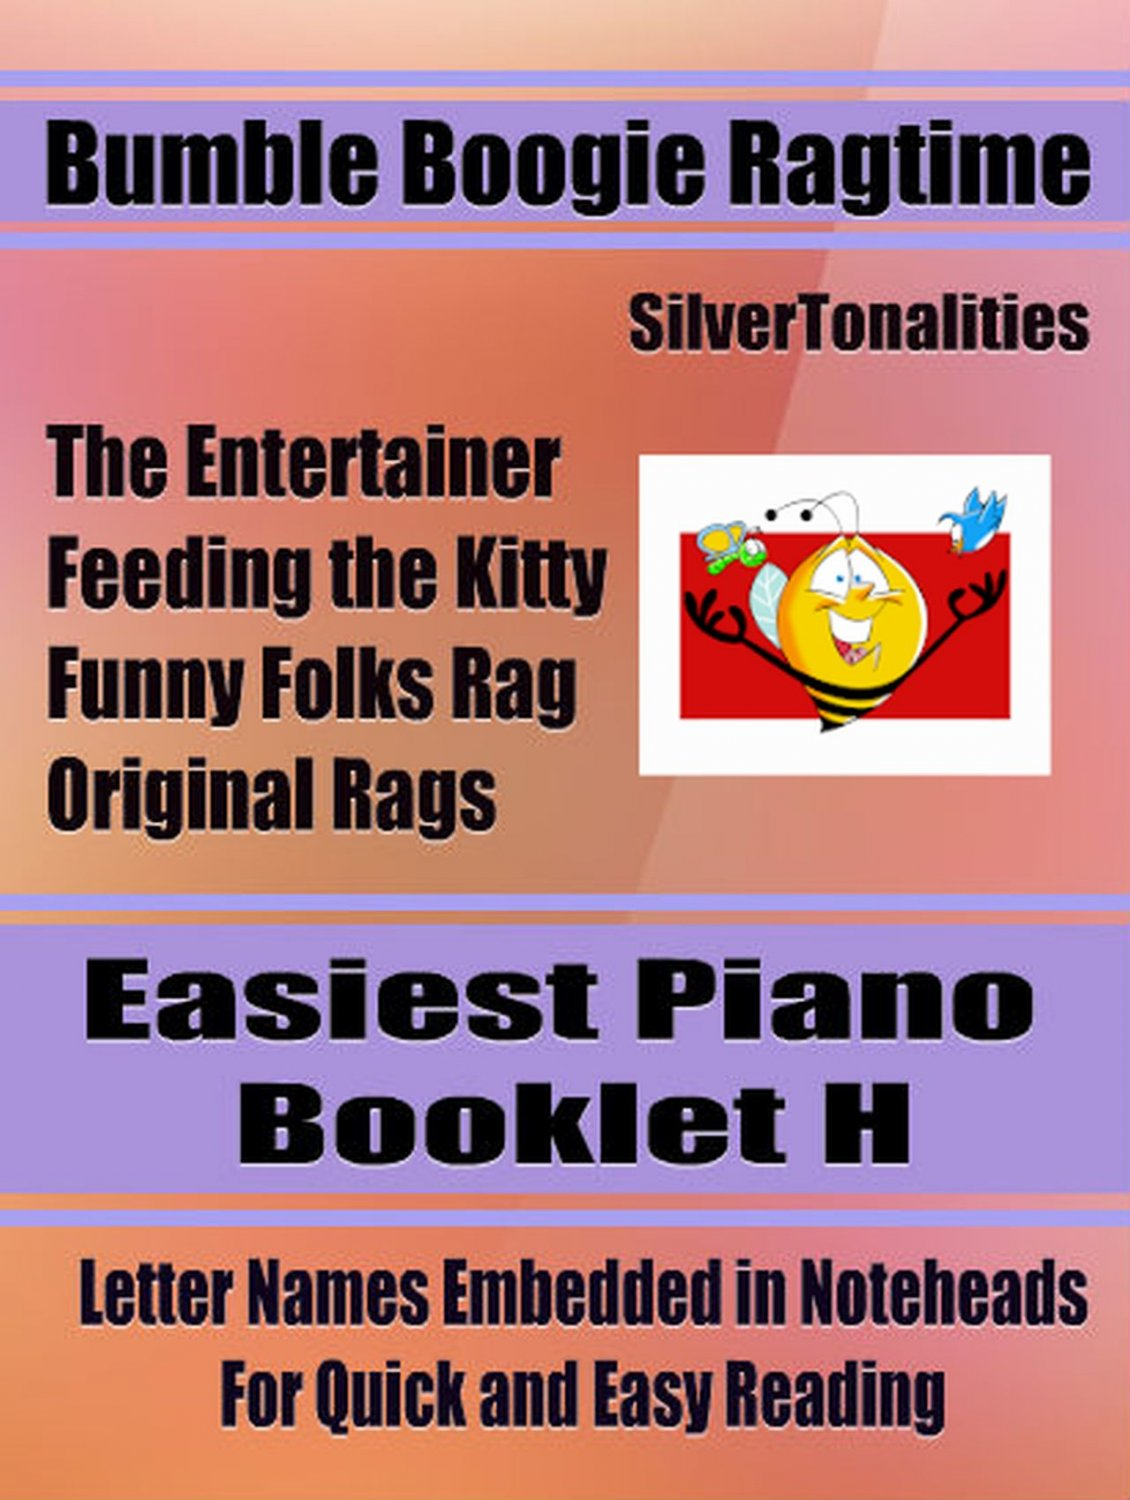 Bumble Boogie Ragtime for Easiest Piano Booklet H